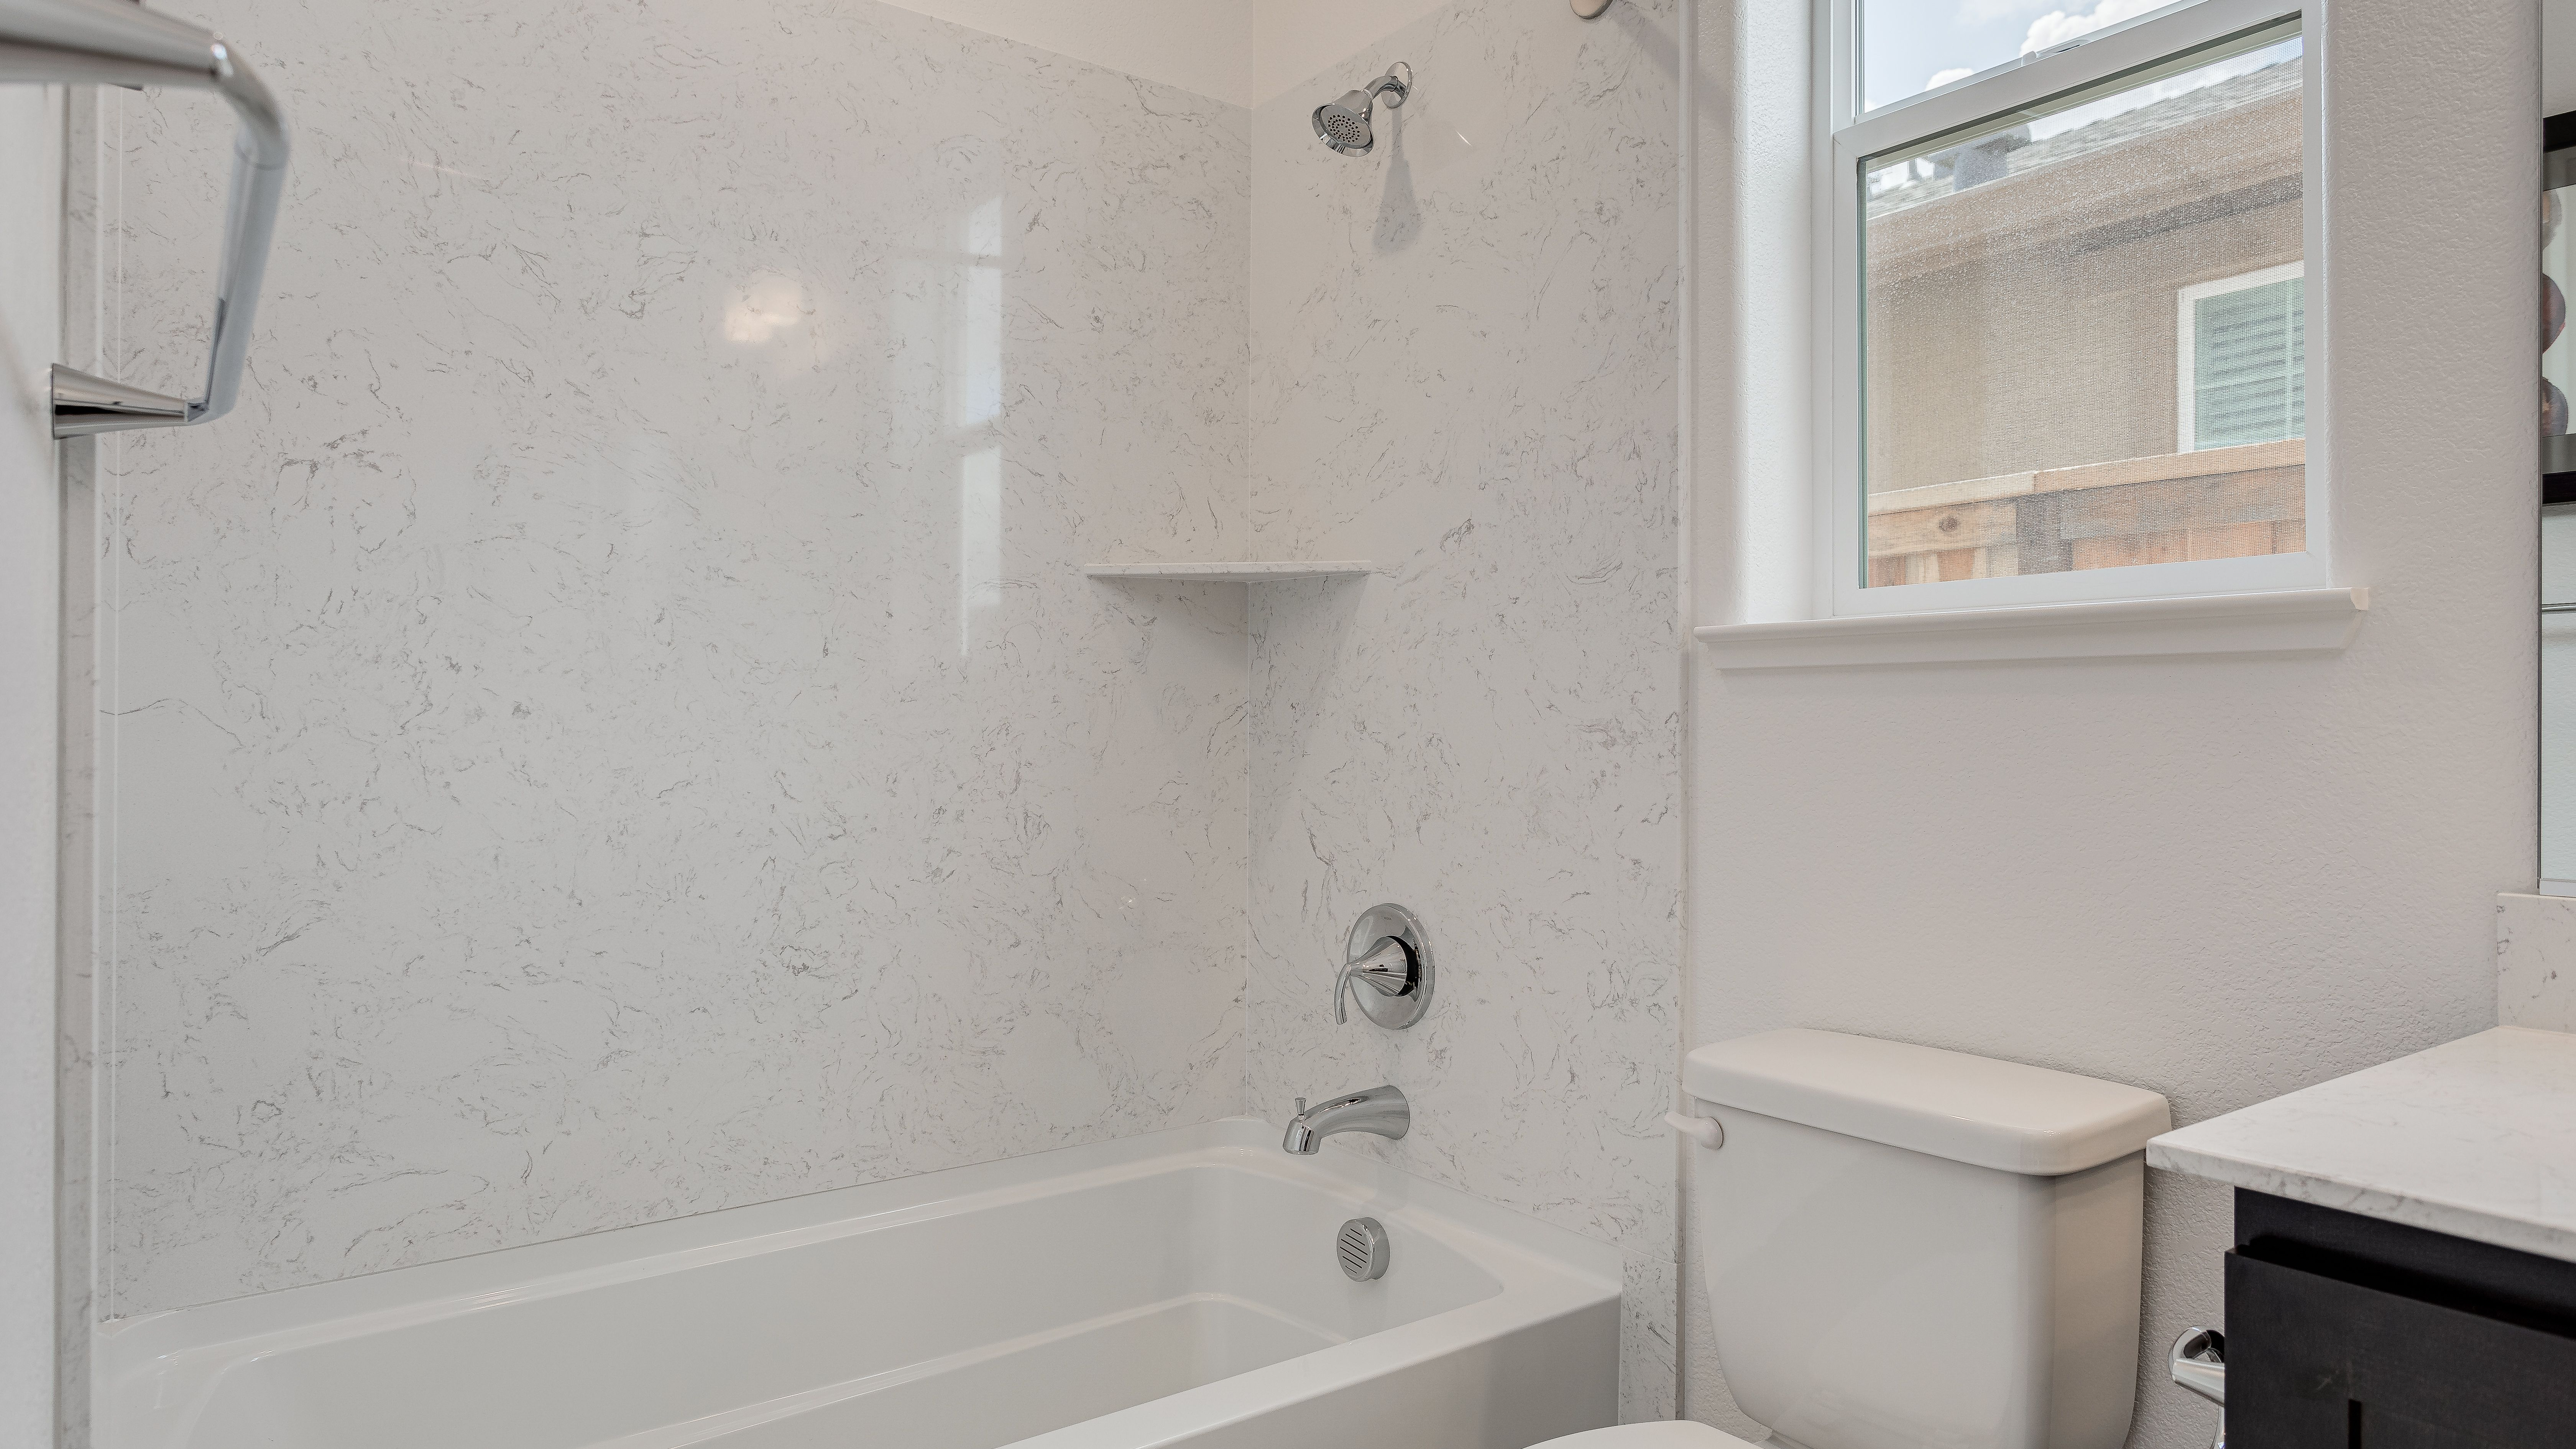 Bathroom featured in the Residence 3 By Taylor Morrison in Stockton-Lodi, CA